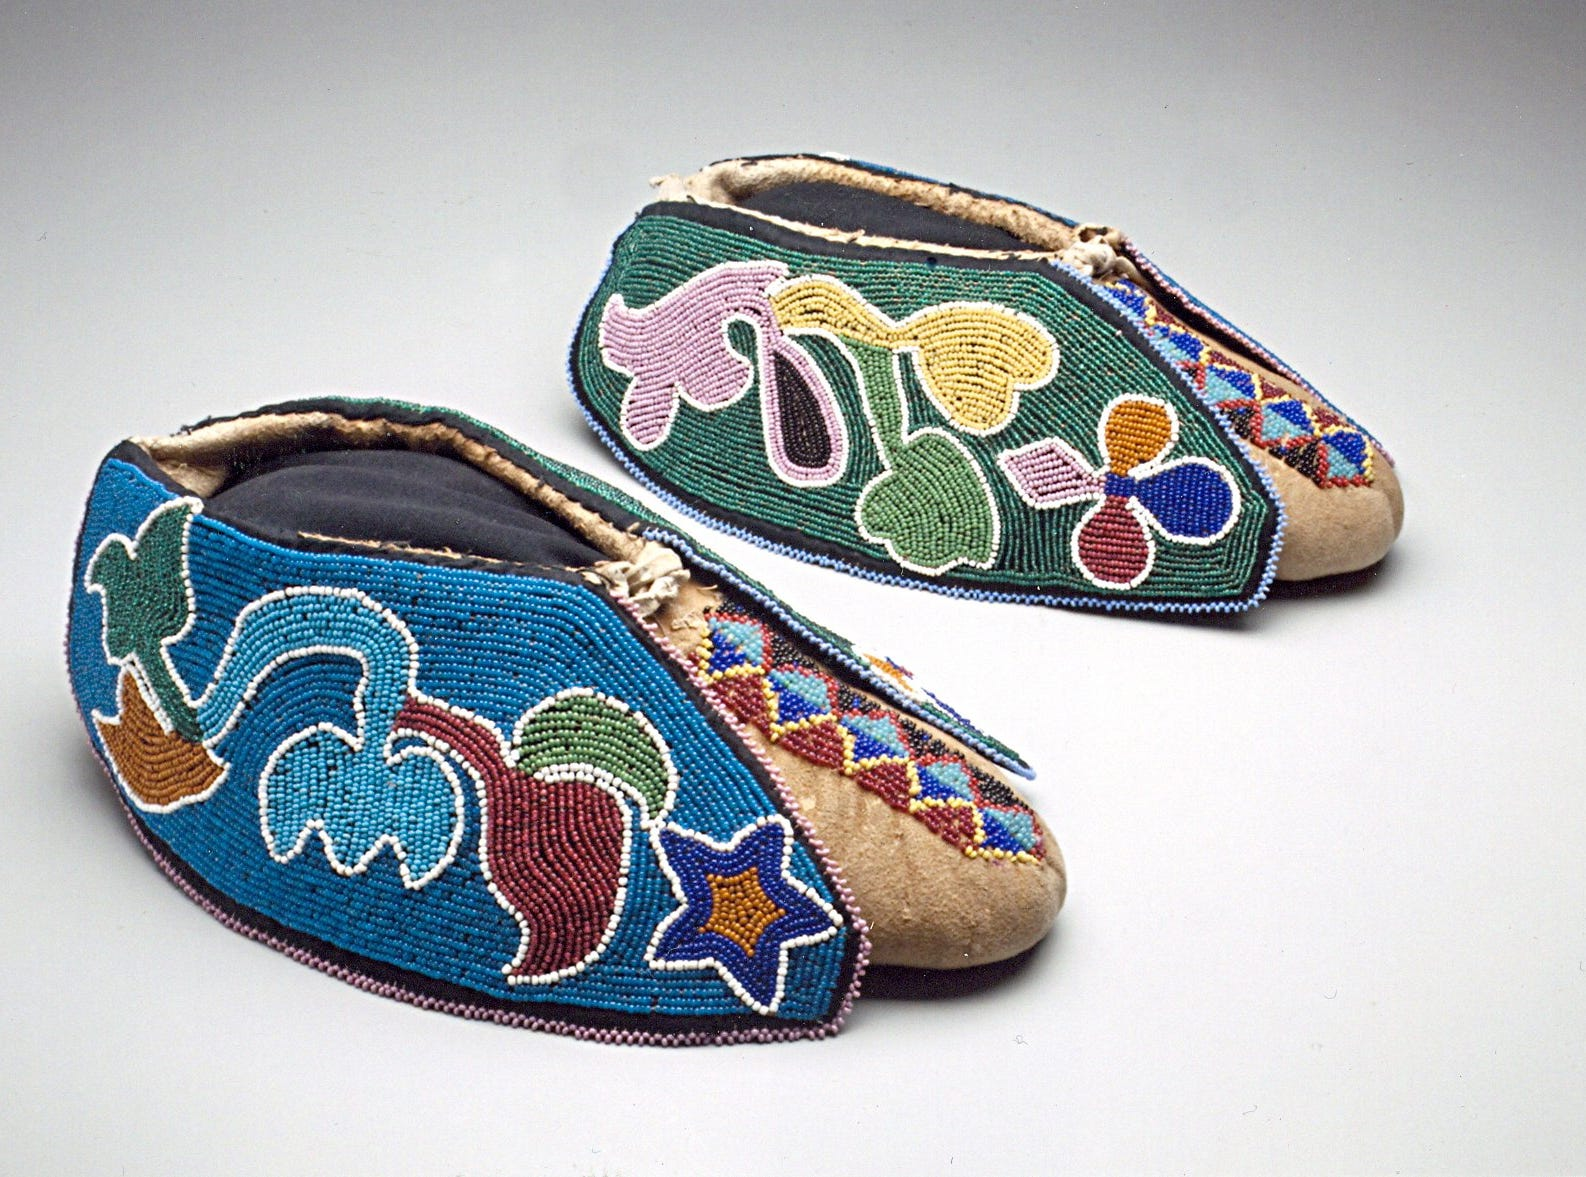 "Hese Potawatomi appliqued moccasins are part of ""Brightly Beaded: North Amiercan Indian Glass Beadwork"" showing at the McClung Museum. A display of moccasins from different tribes illustrate the different techniques and decorating styles of Native Americans."